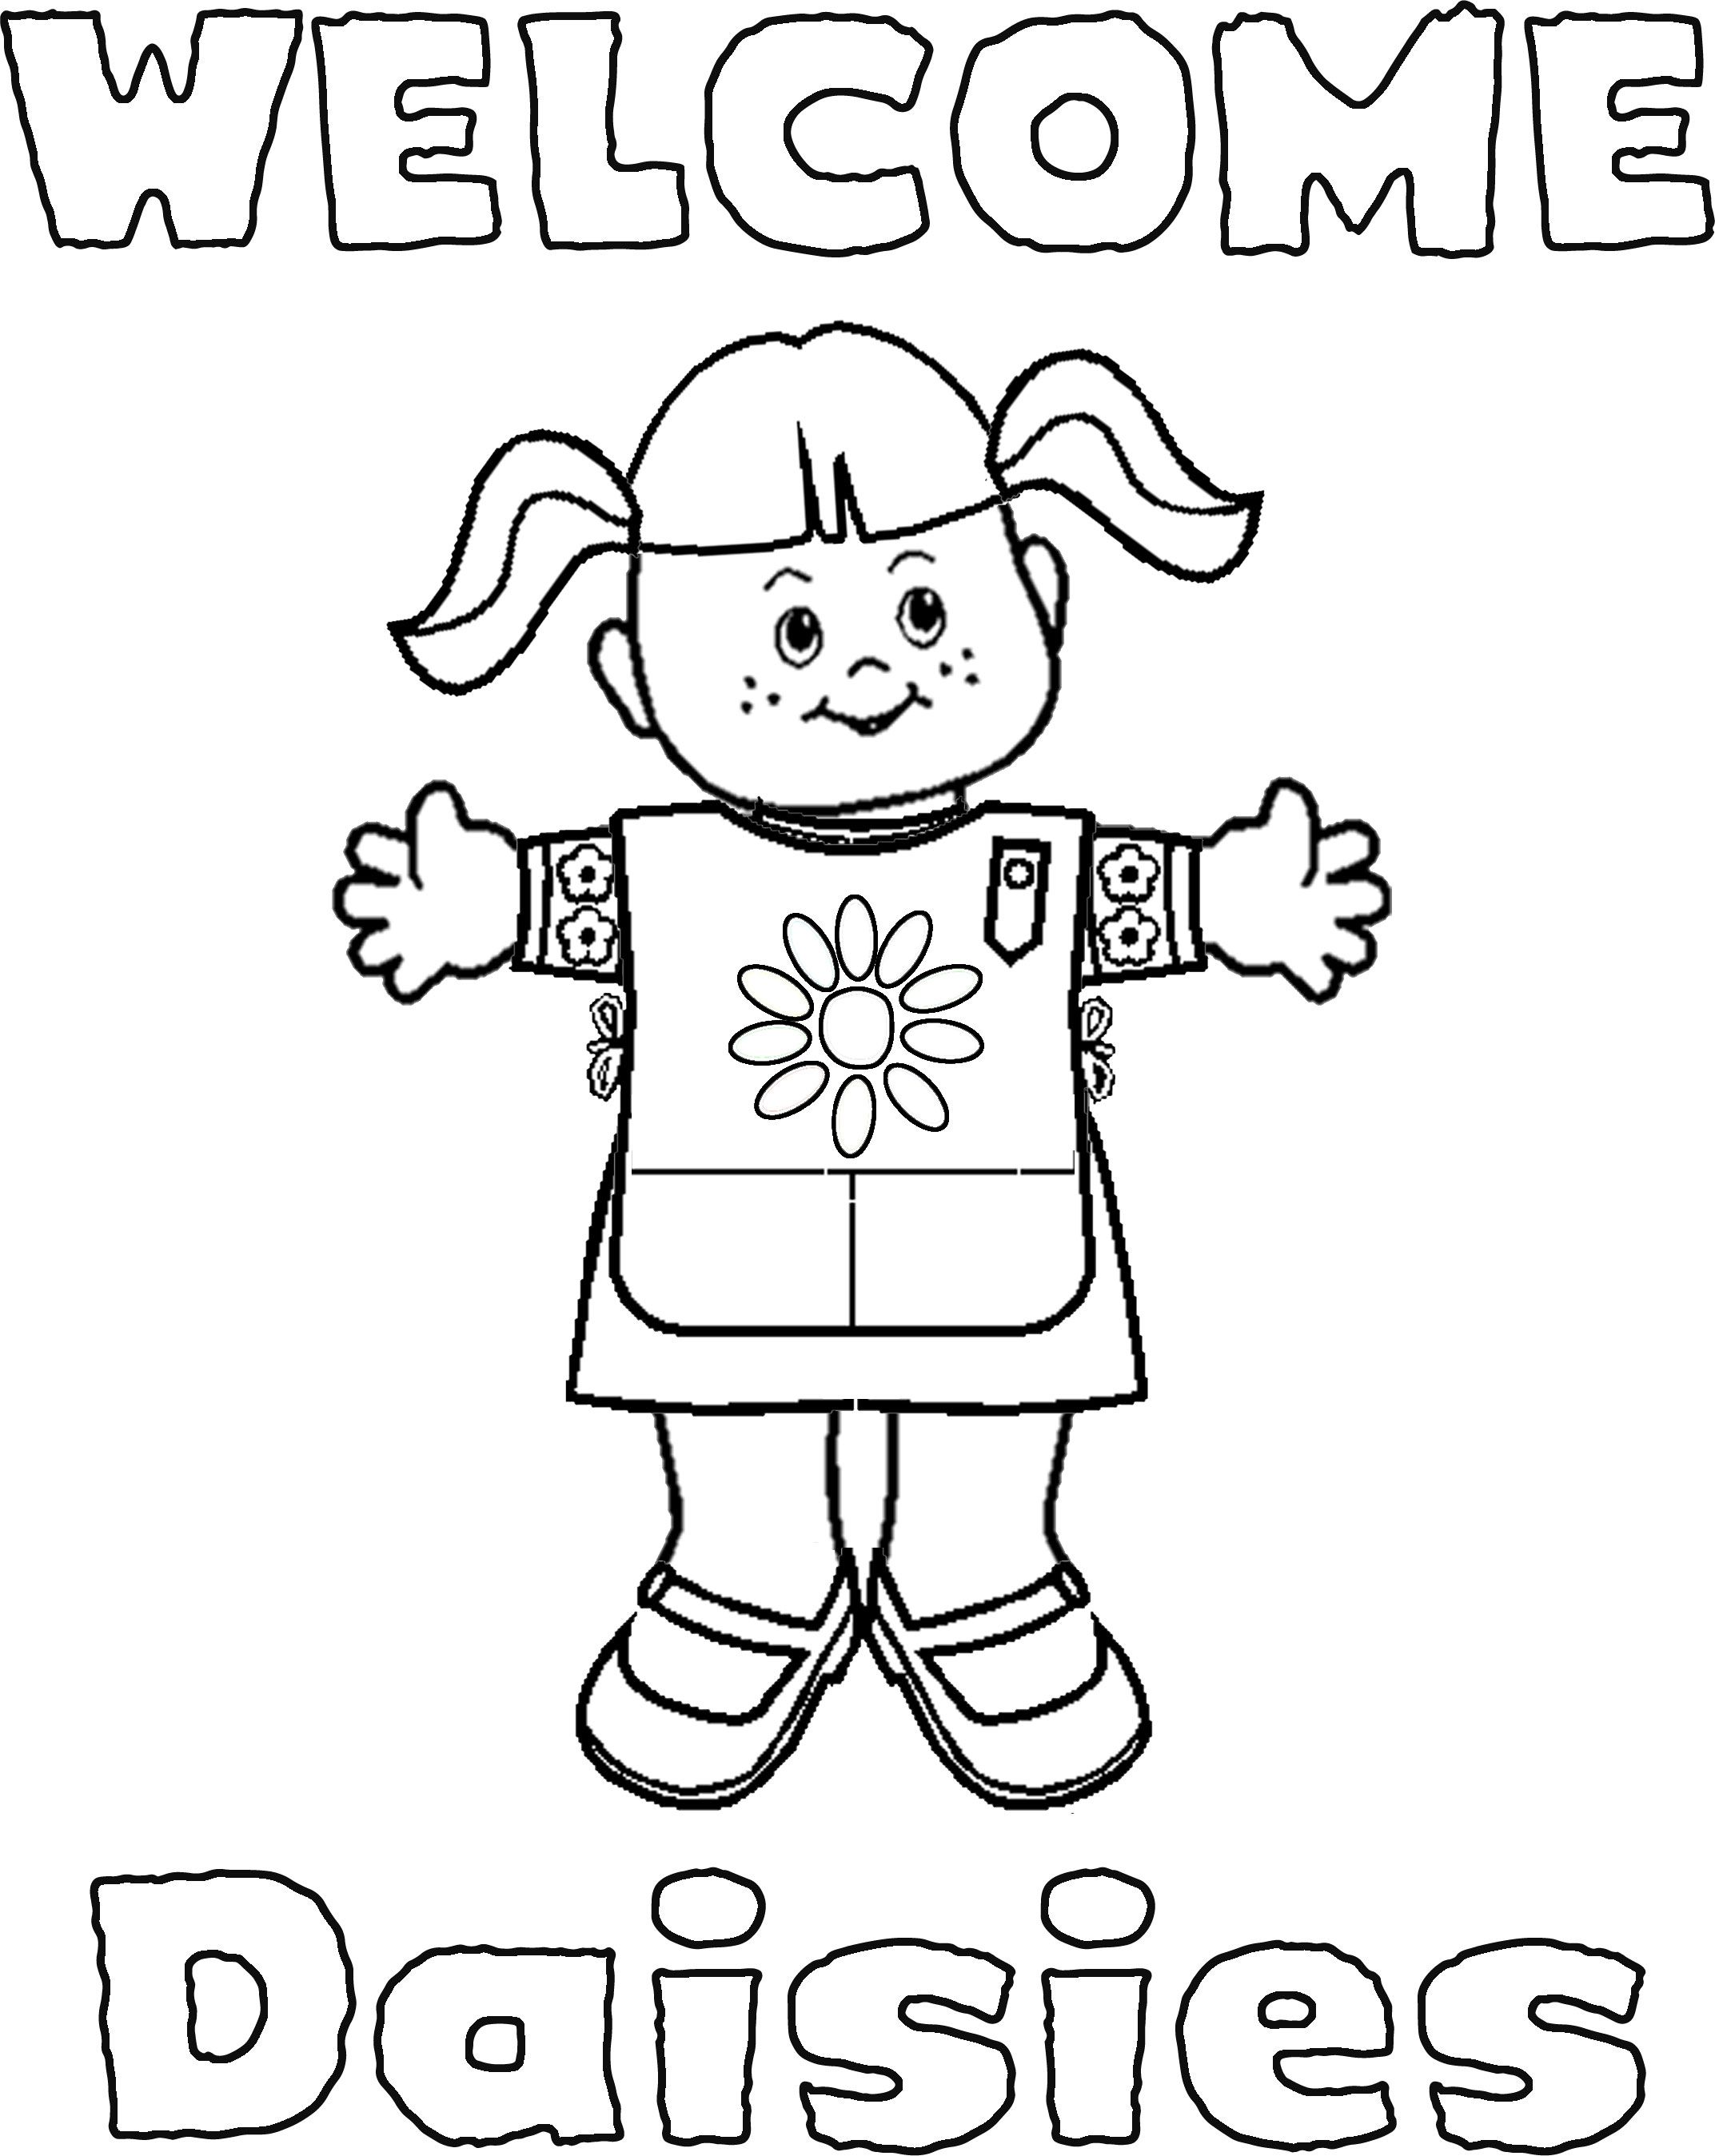 coloring pages for daisy scouts girl scout coloring page super coloring welcome signs for daisies